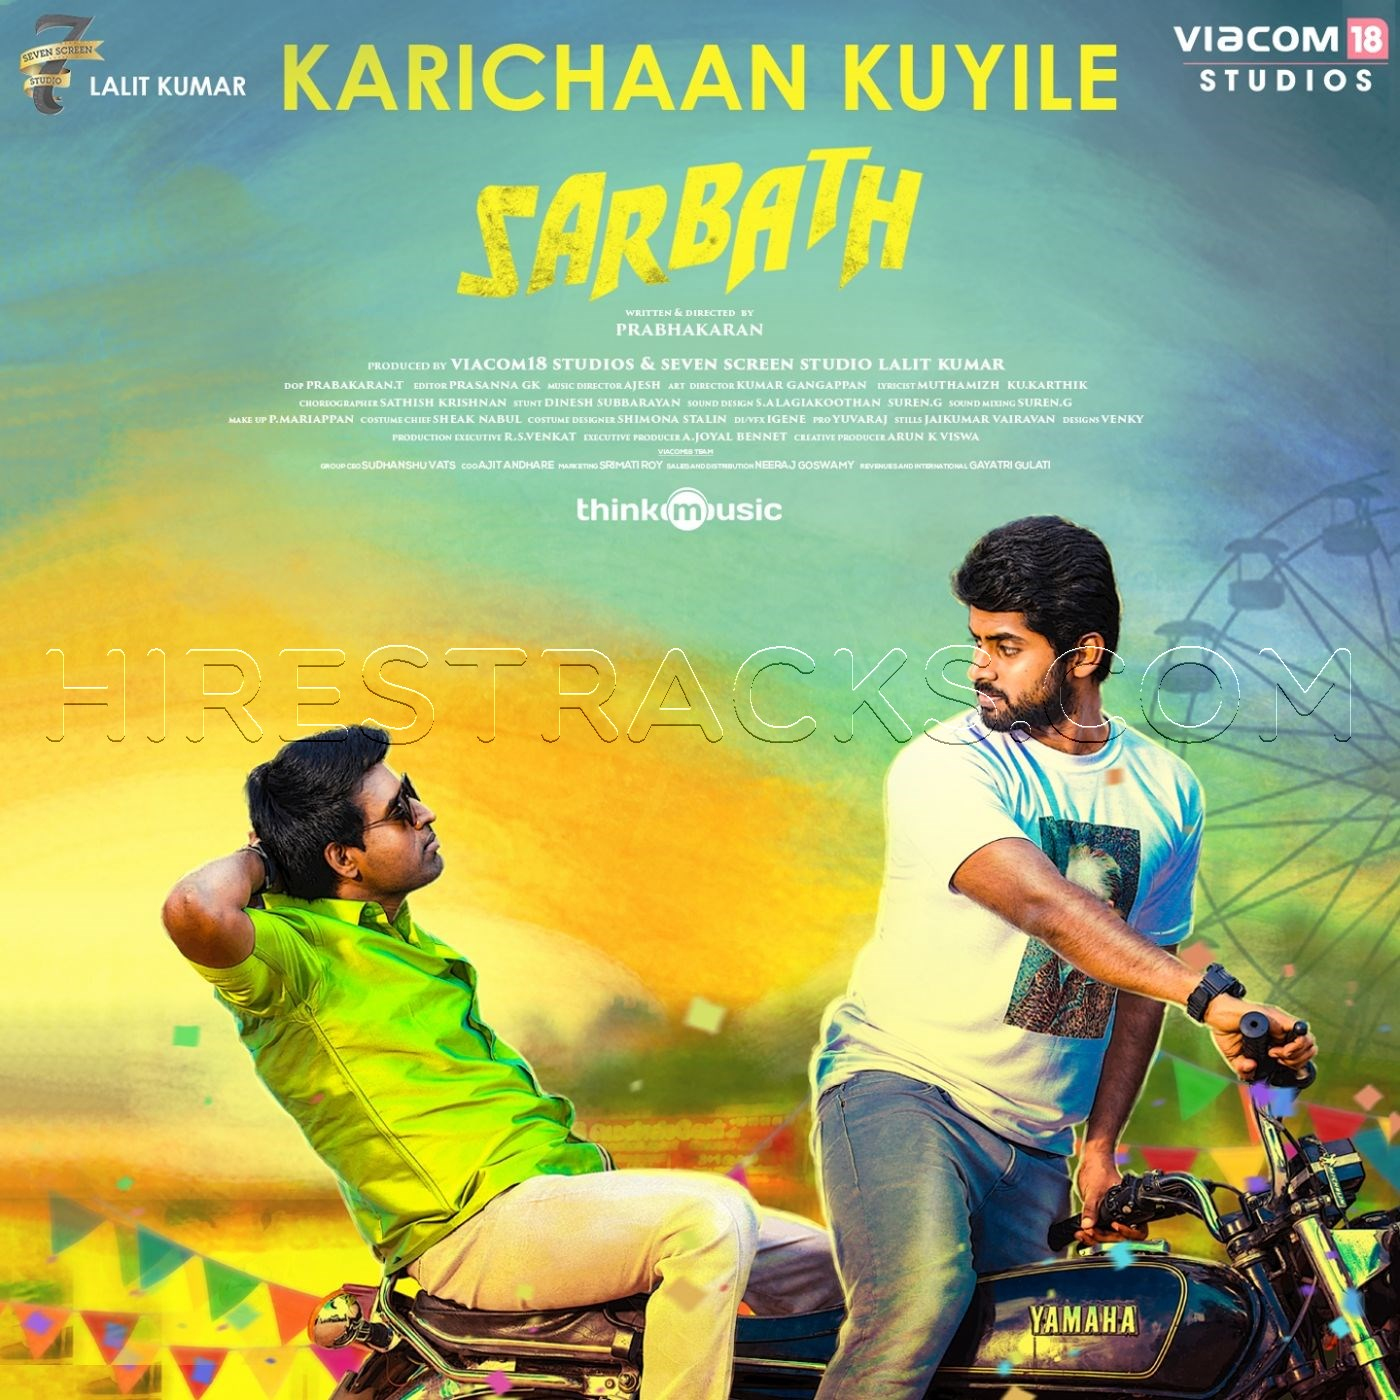 Karichaan Kuyile (From Sarbath) (2019) (Ajesh) (Think Music)